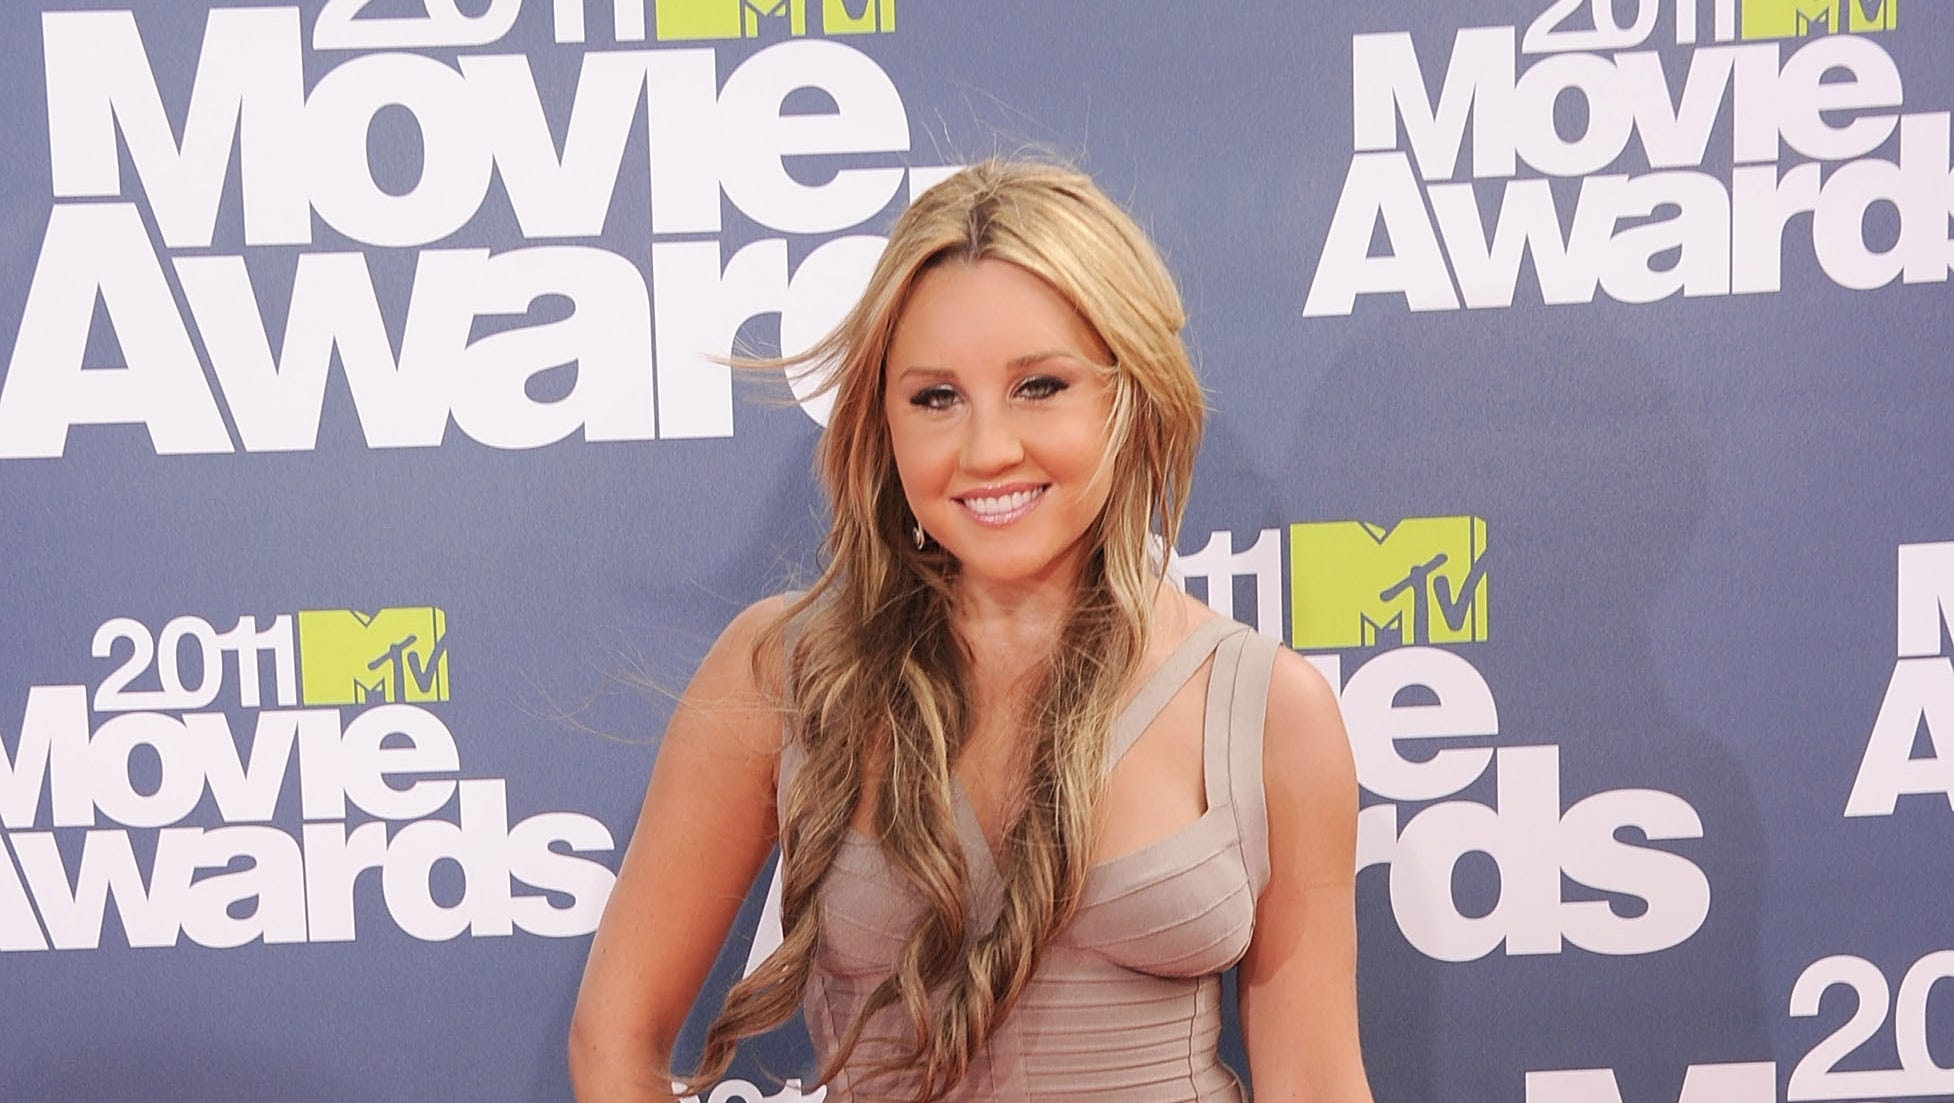 Amanda Bynes Naked Pics amanda bynes: not naked, not troubled, but very rich